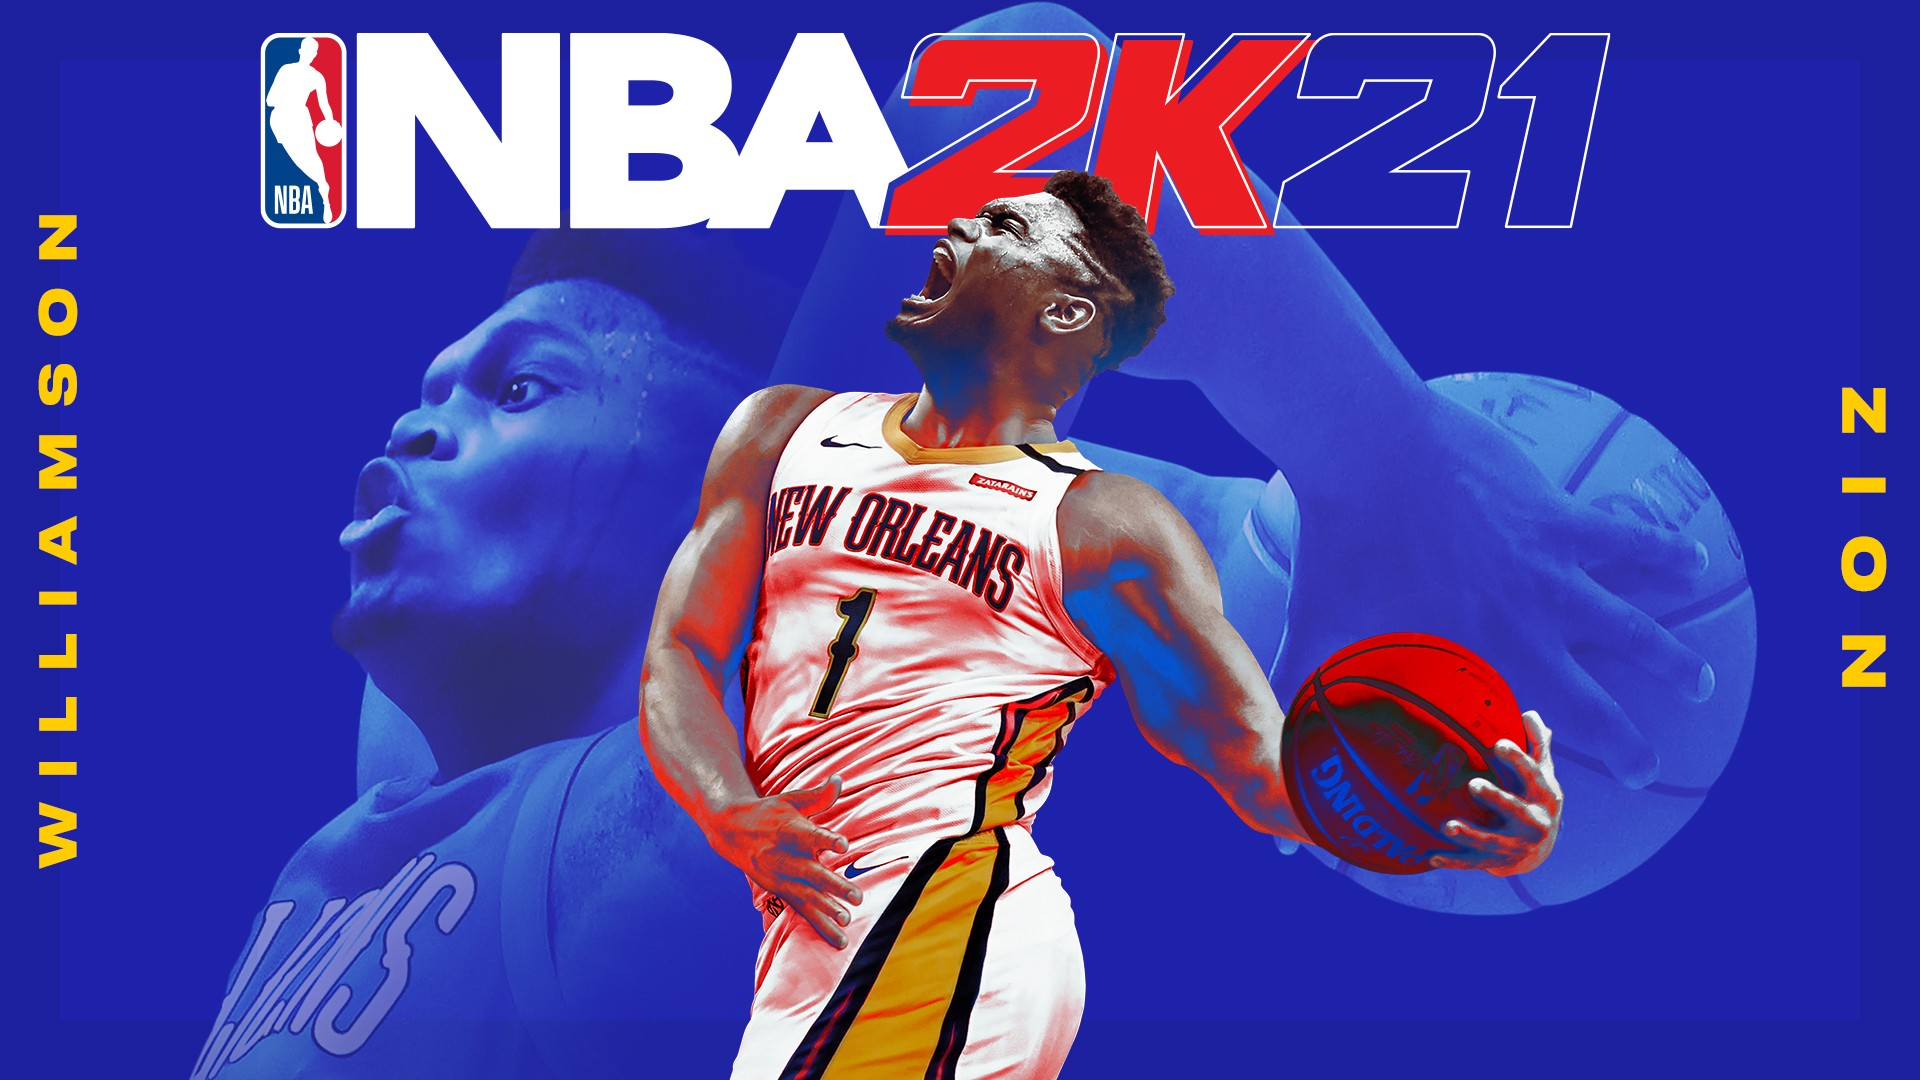 NBA 2K21 – The Next-Generation is Now